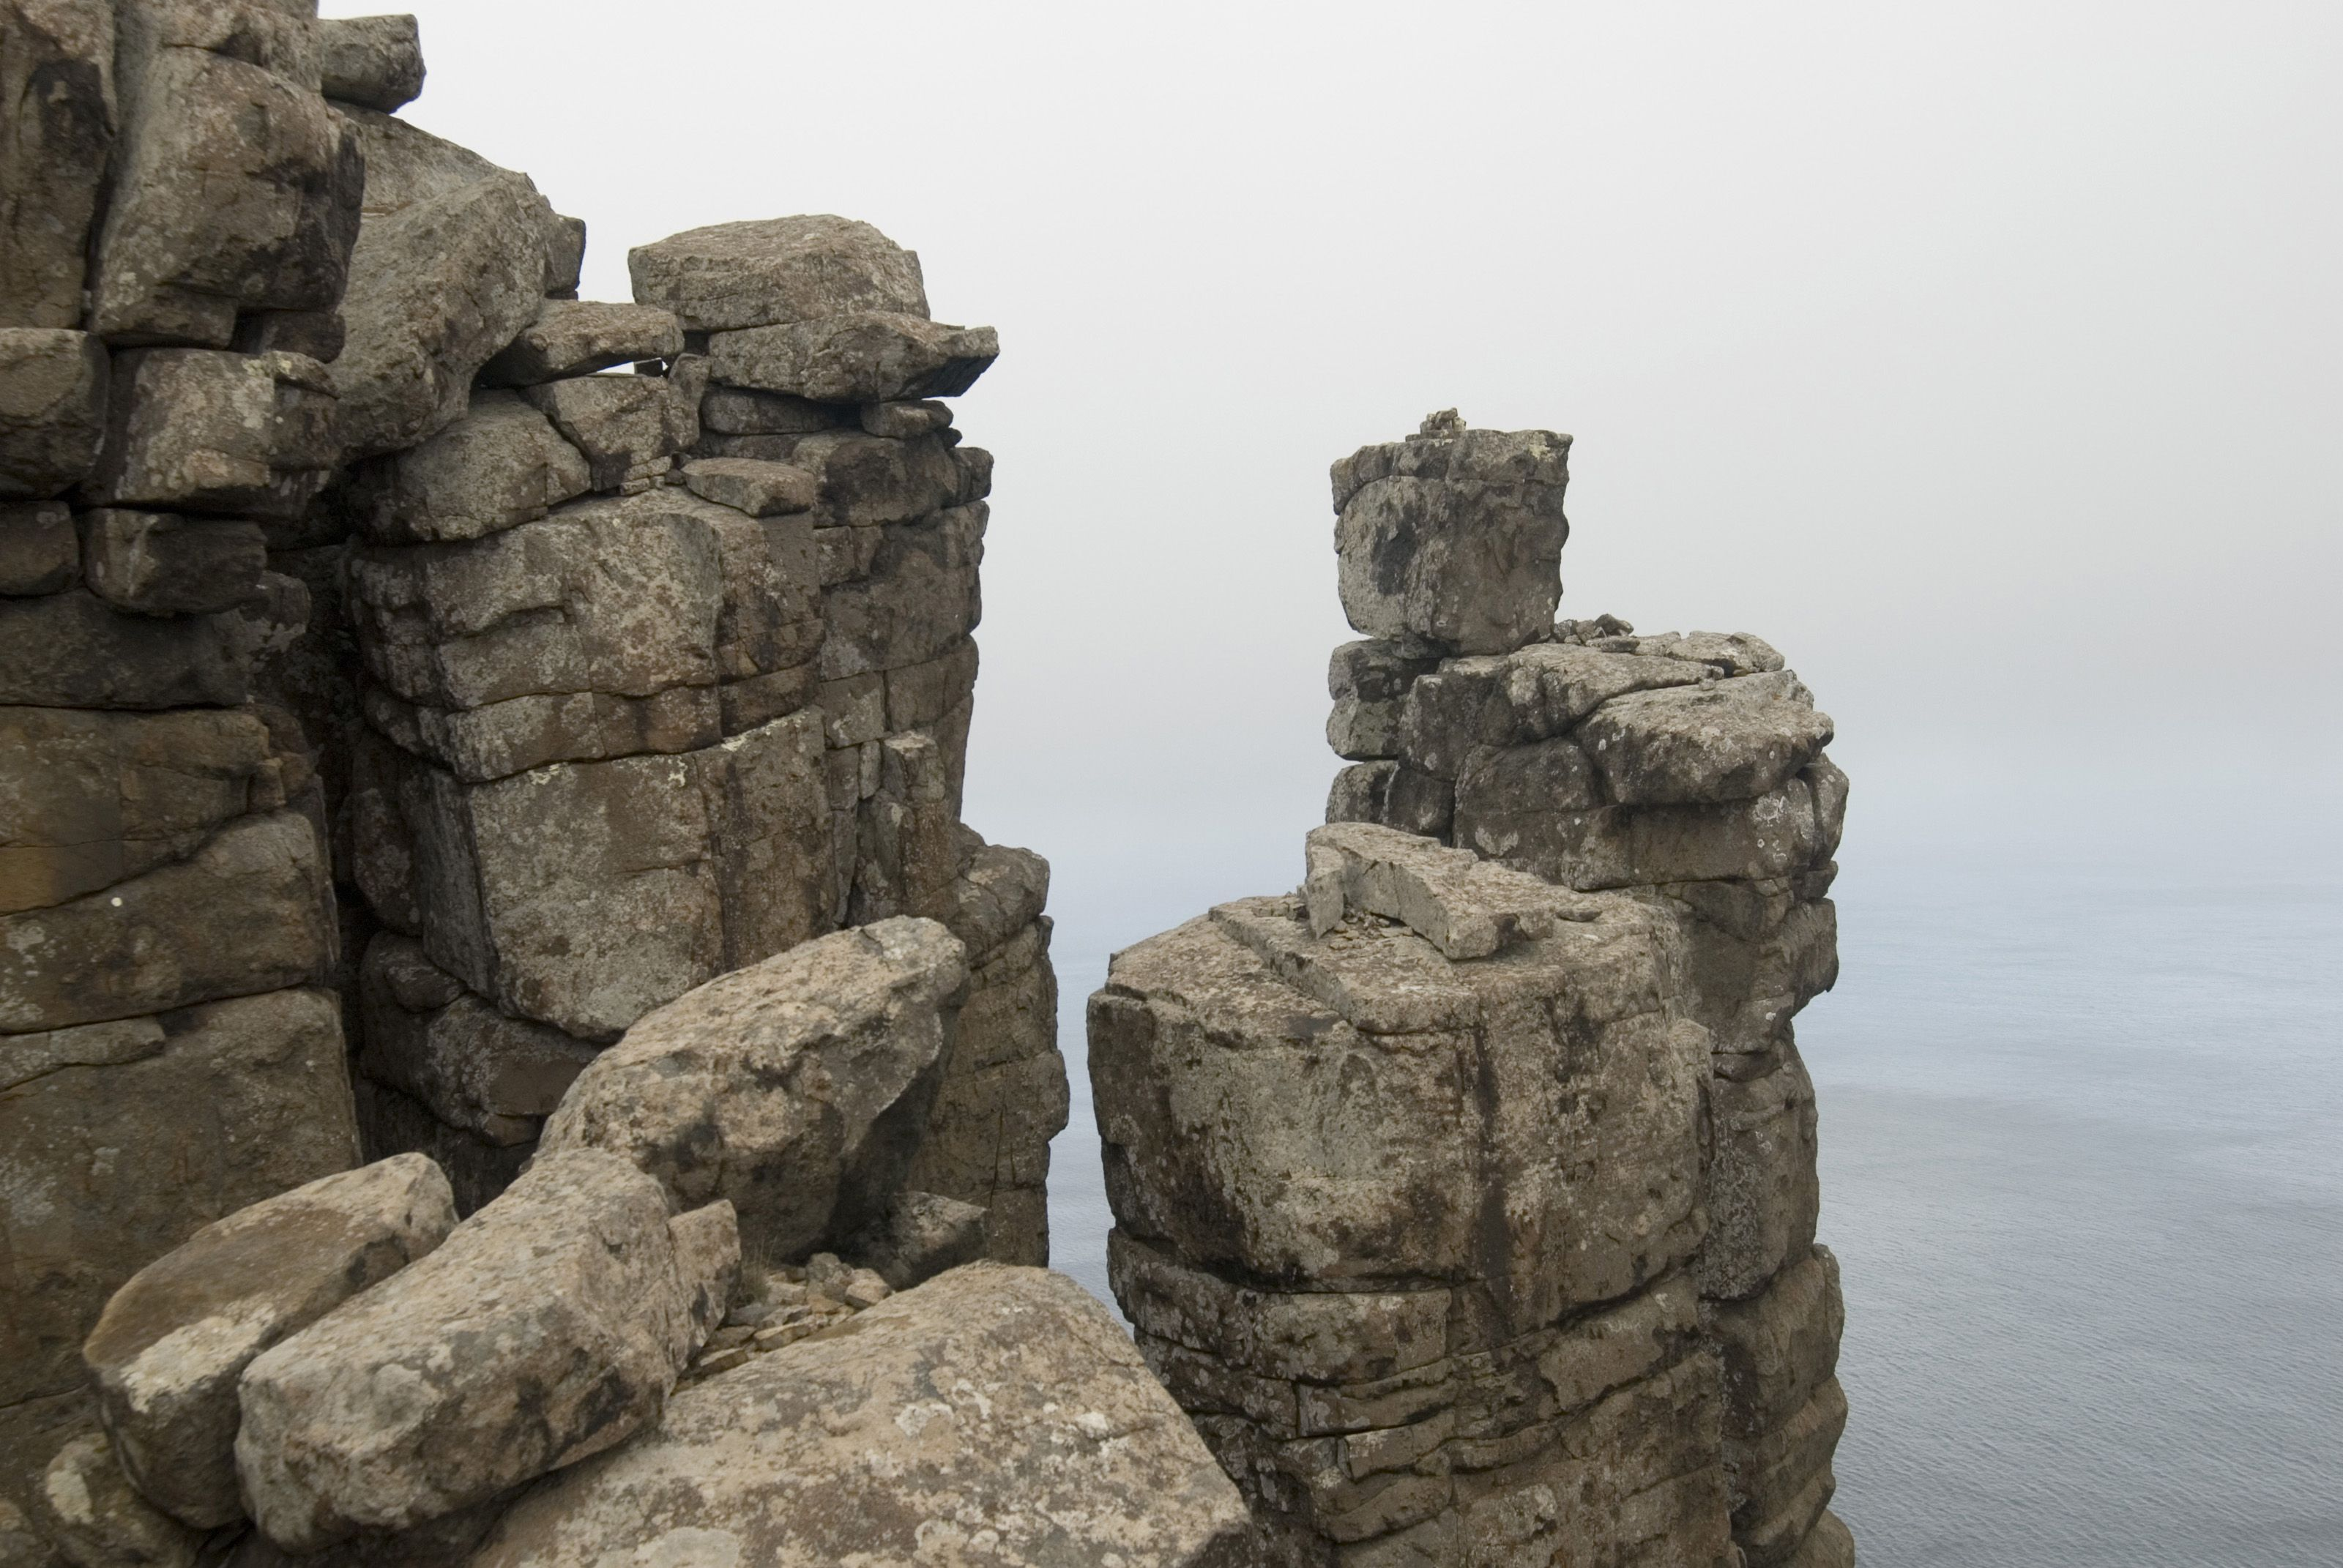 cliff rock formations - Google Search | cliffsides | Pinterest